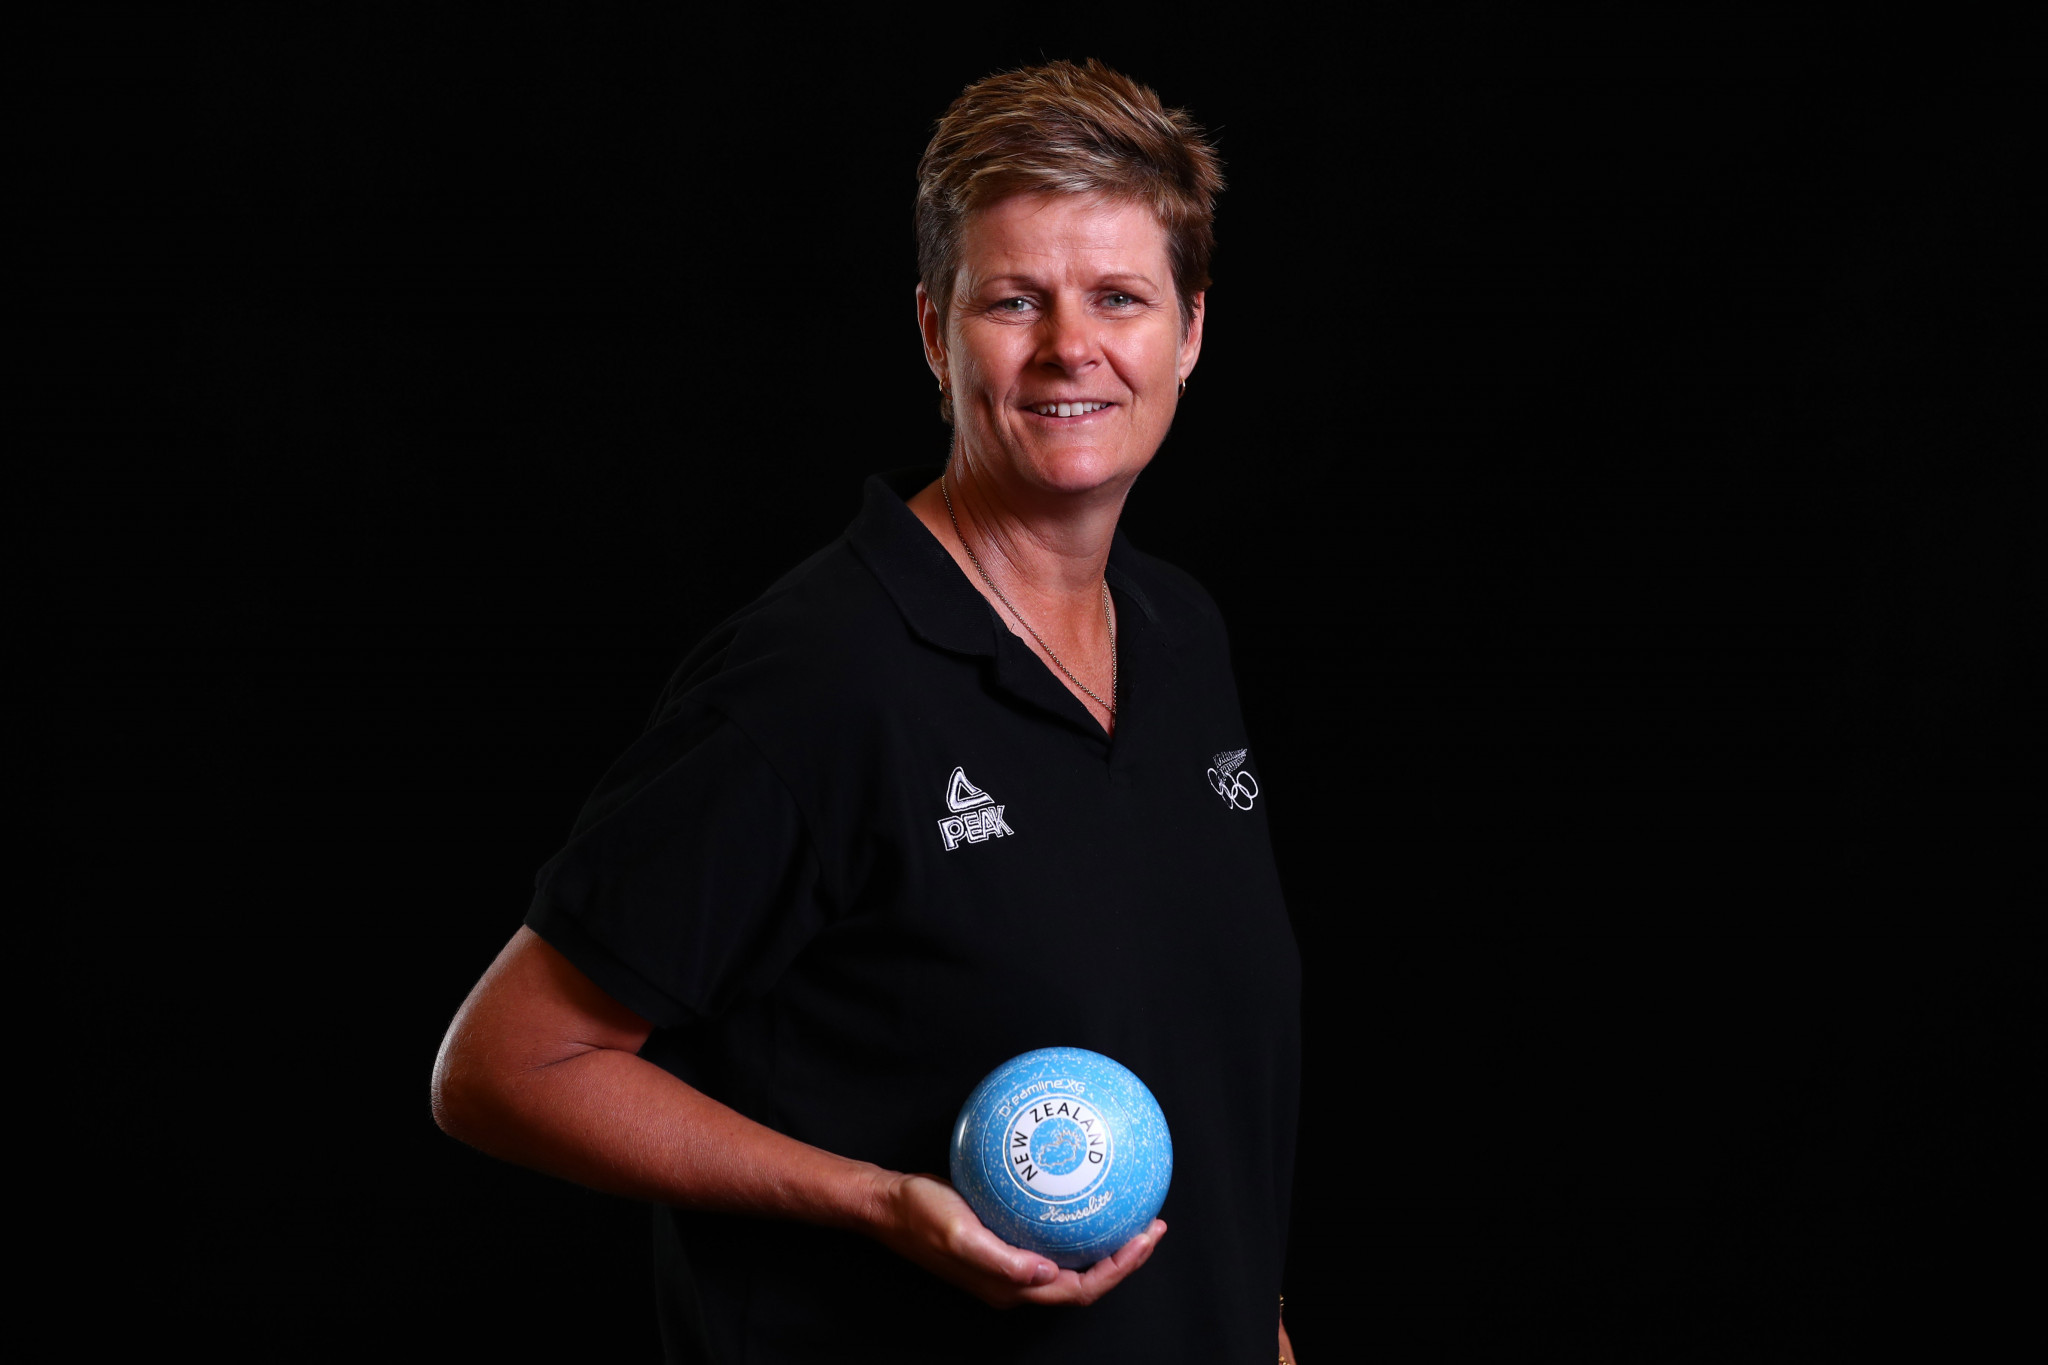 Jo Edwards of New Zealand has reached the women's final at the World Bowls Champion of Champions competition in Australia ©Getty Images